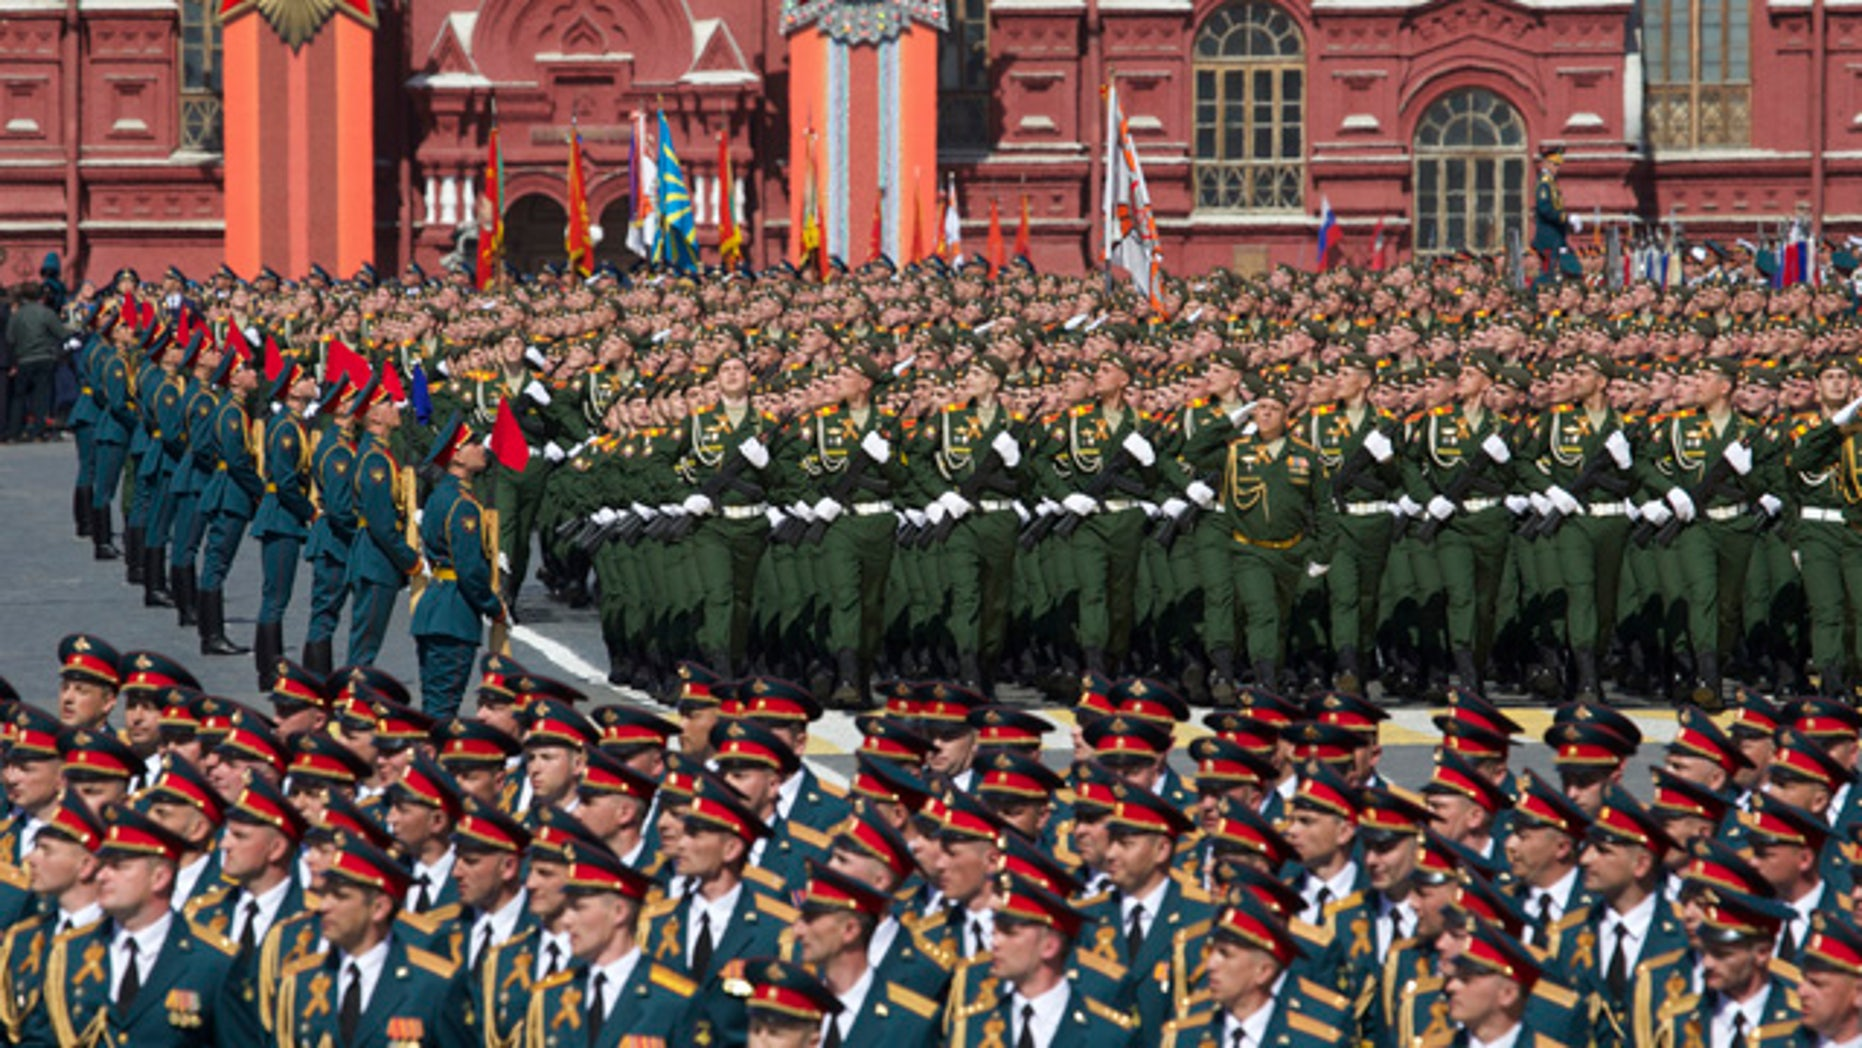 May 9, 2015: Russian army soldiers march along Red Square during the Victory Parade marking the 70th anniversary of the defeat of Nazi Germany in World War II in Moscow. (AP Photo/Ivan Sekretarev)